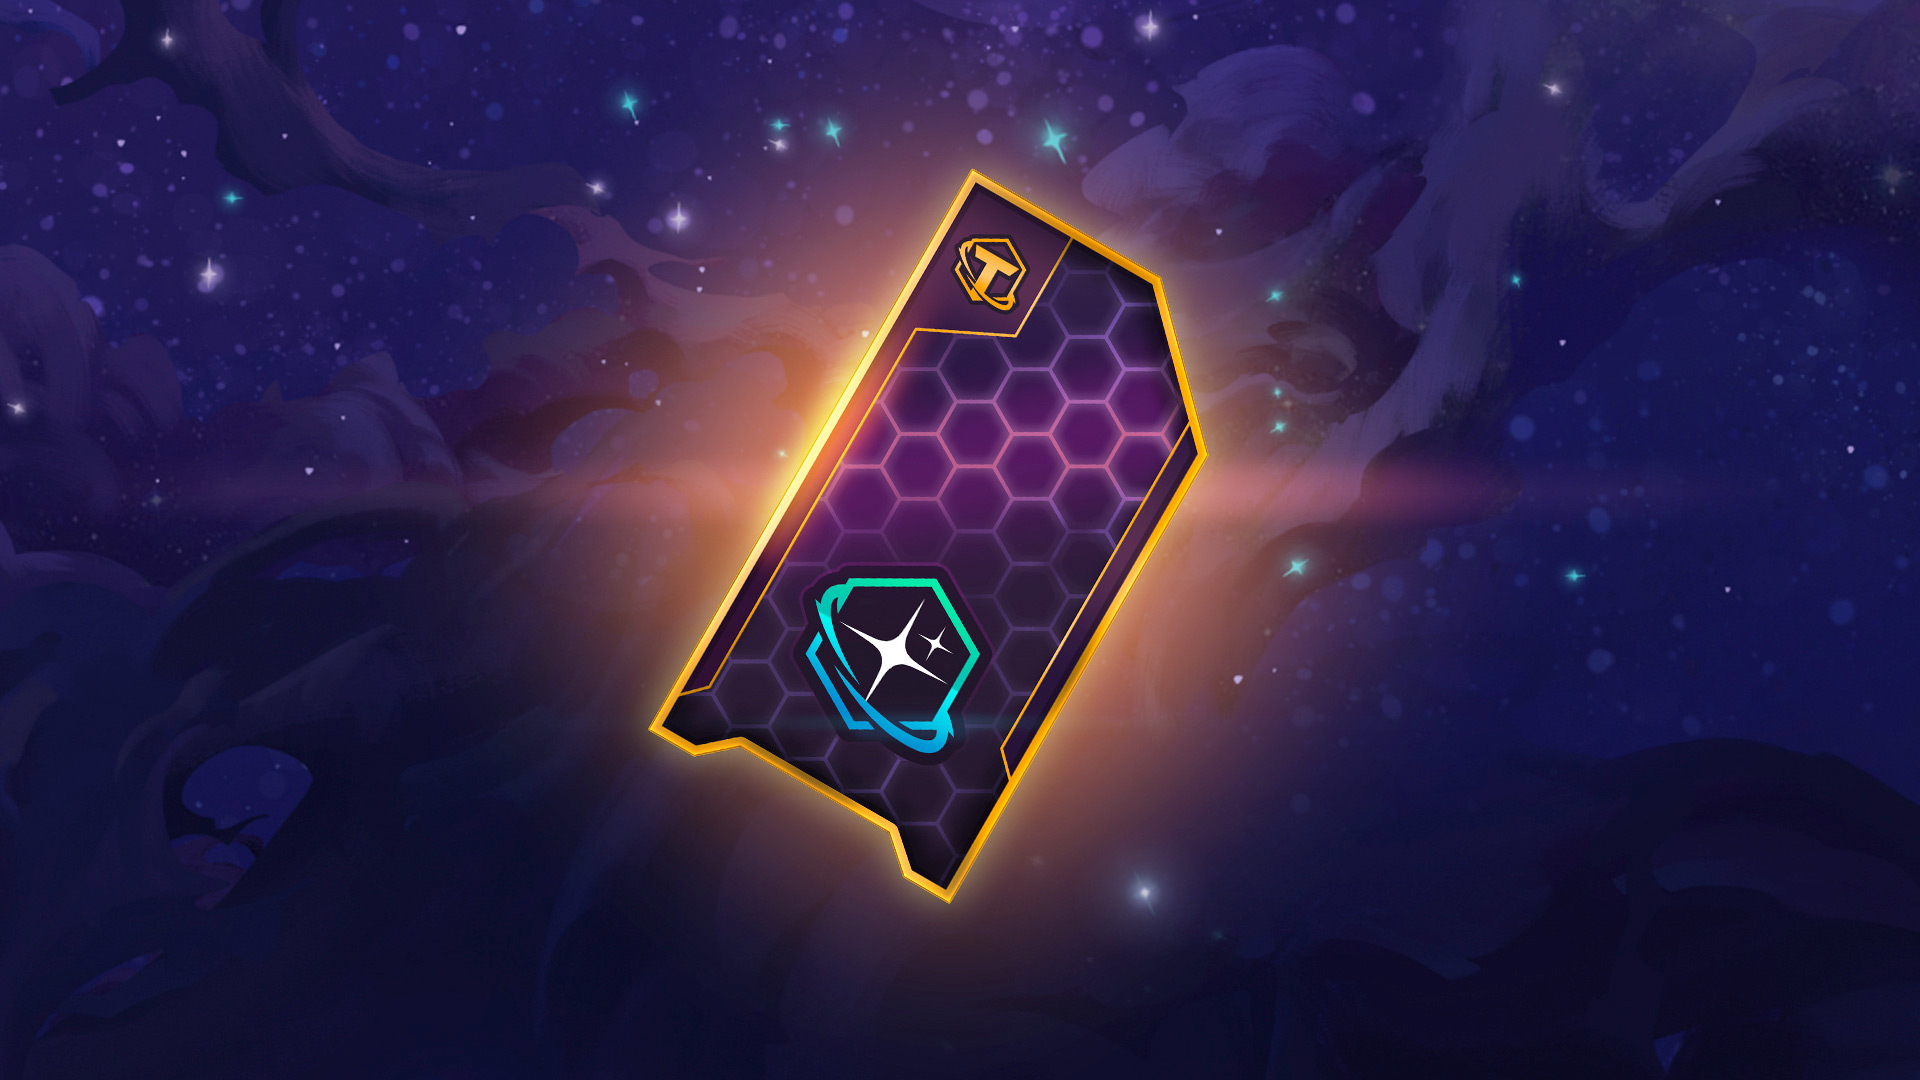 TFT.S3-GALAXIES-BATTLEPASS-ELEMENT-1080p.jpg - 297.98 kb